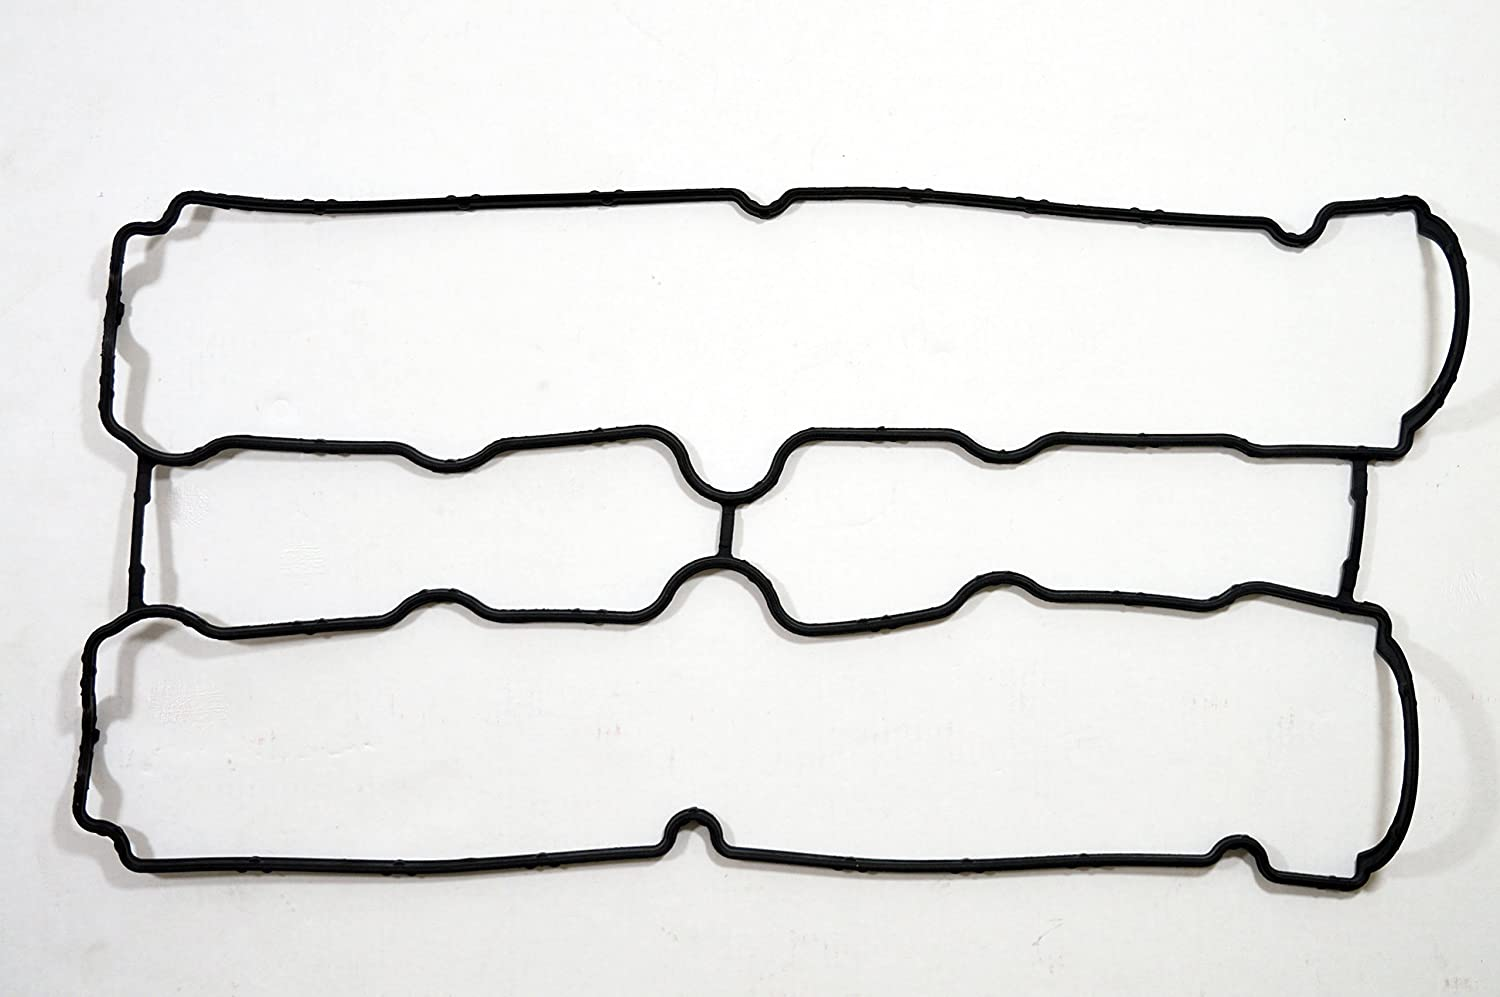 90573498 : - CAM / ROCKER COVER GASKET - NEW from LSC Premium Aftermarket